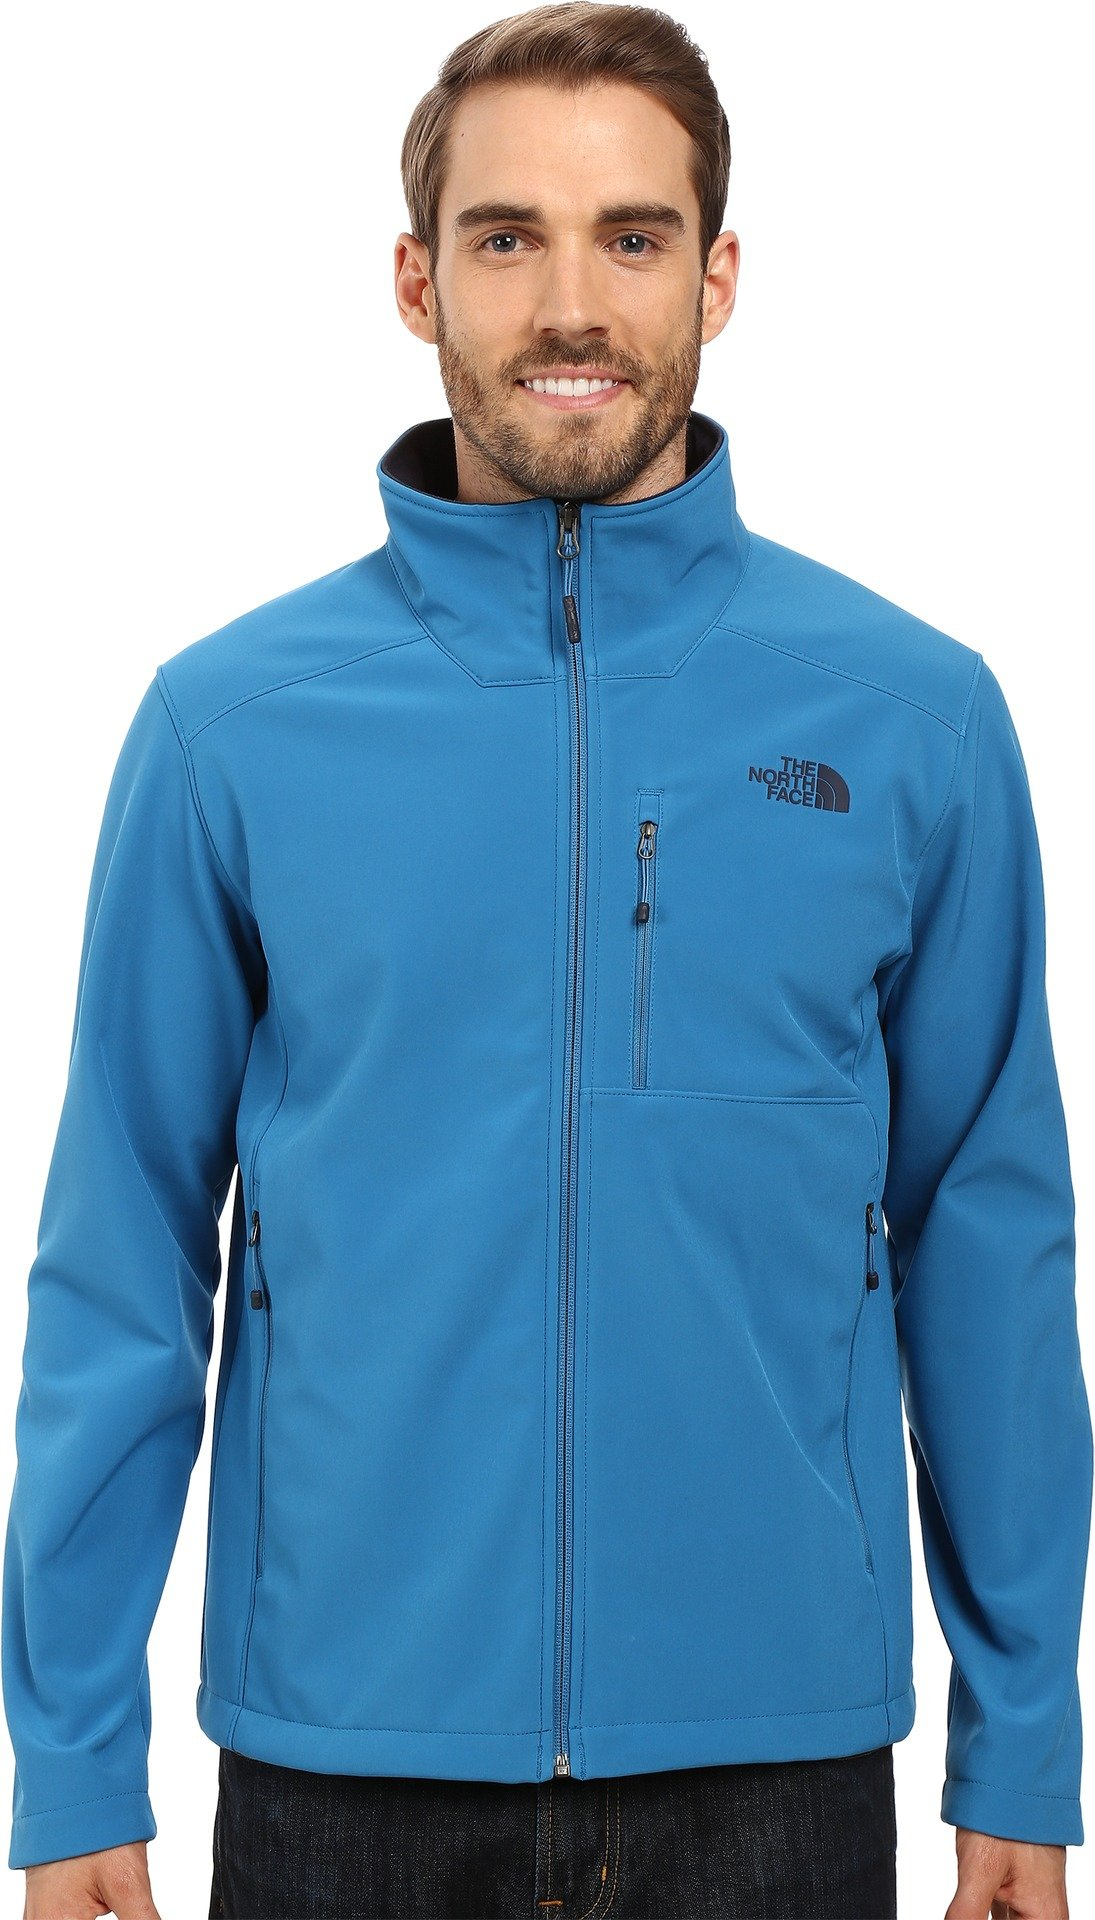 The North Face Men's Apex Bionic 2 Jacket Banff Blue/Banff Blue (Prior Season) X-Large by The North Face